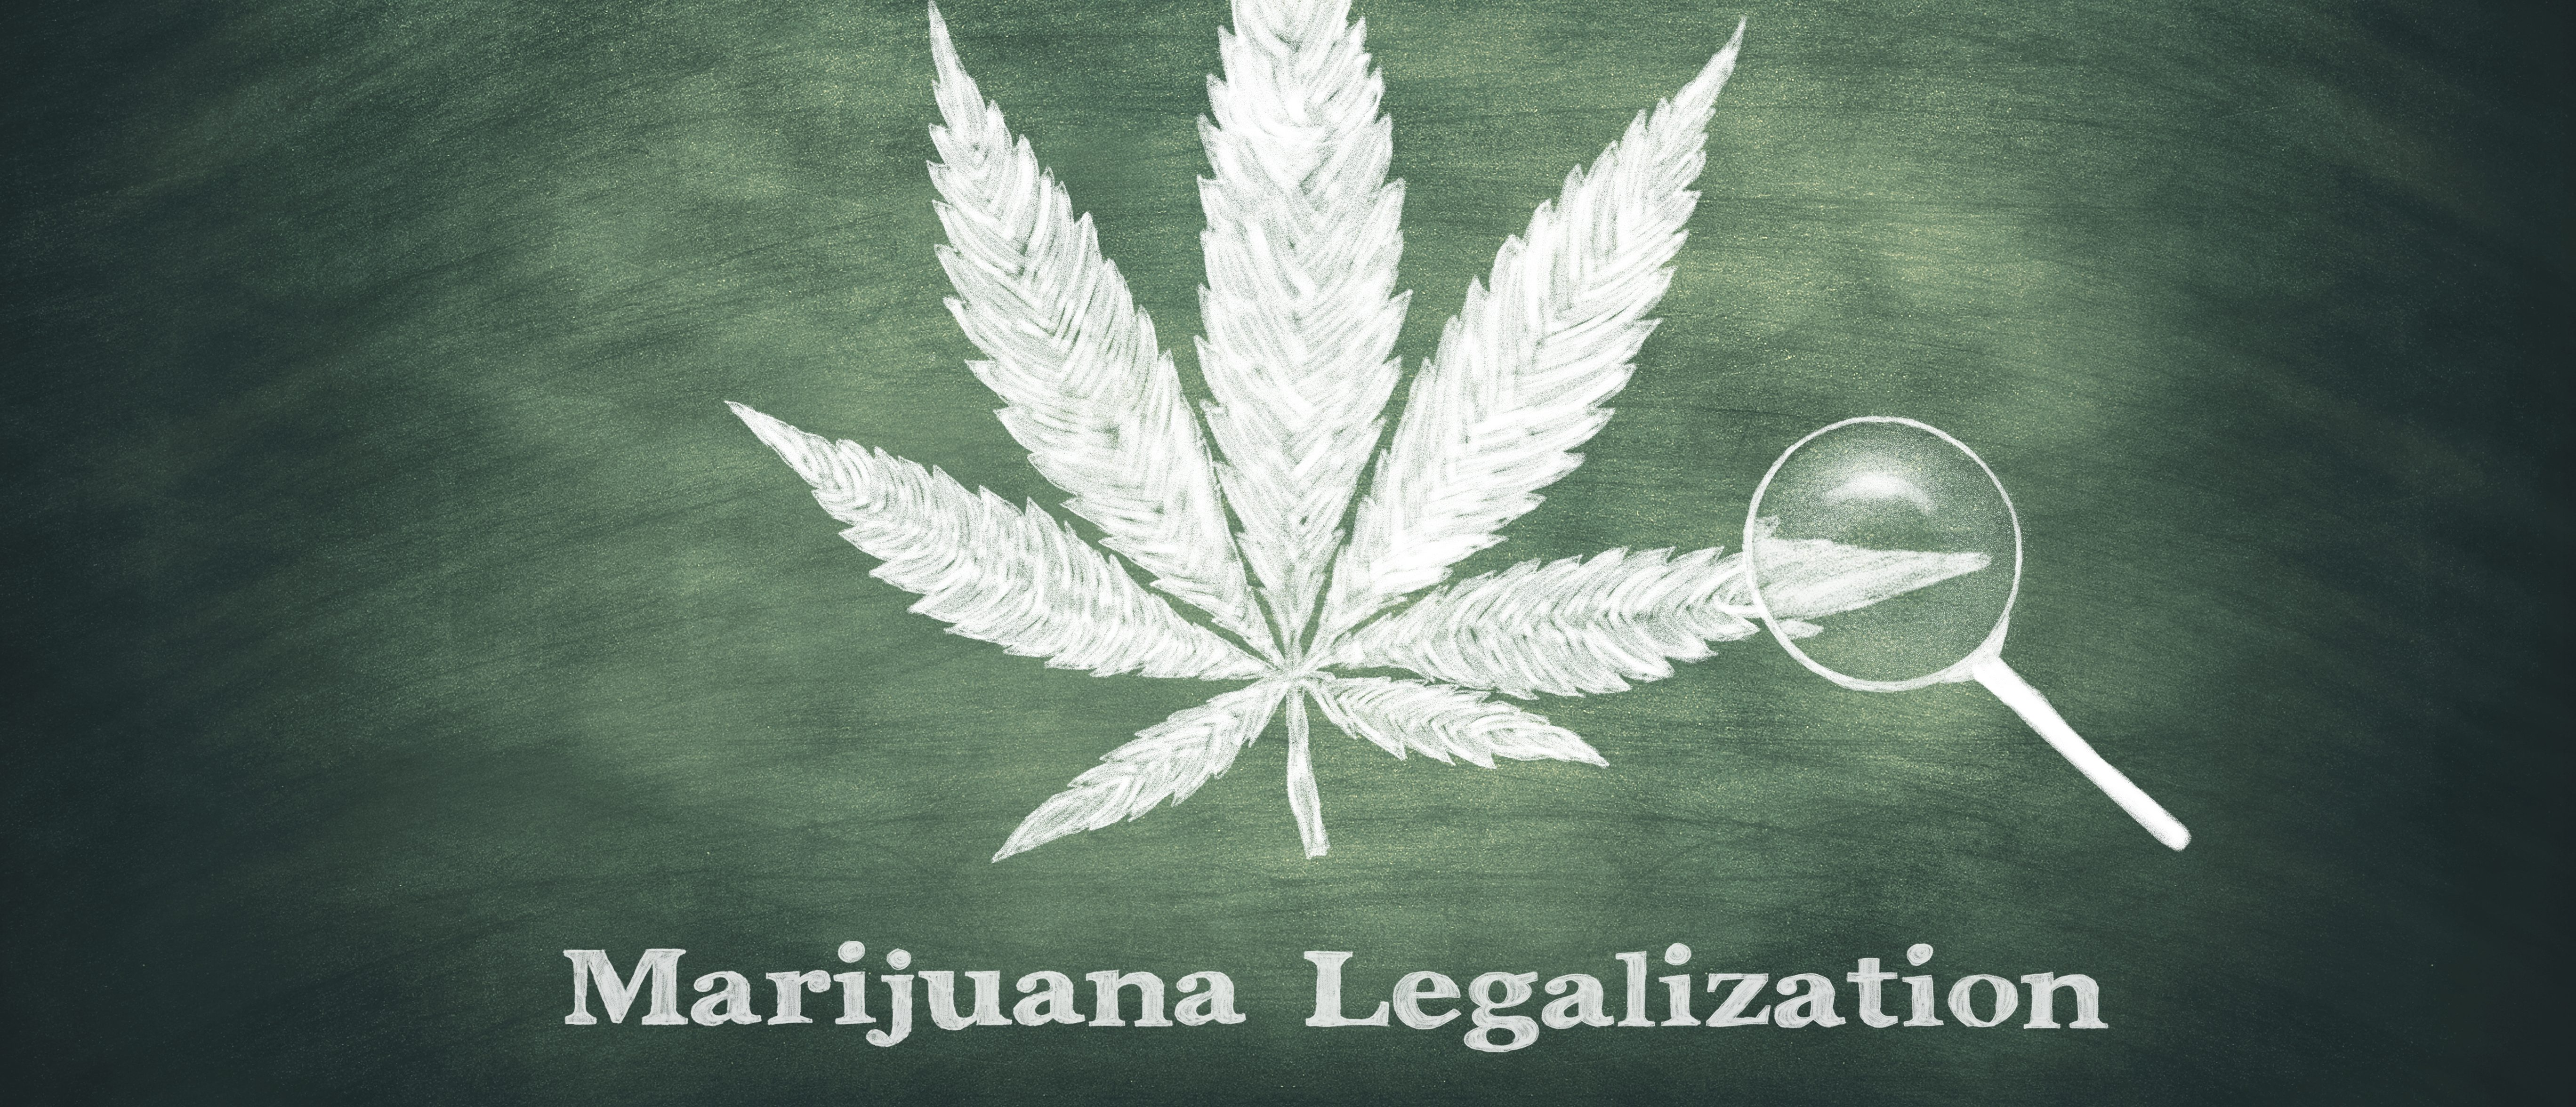 legalize weed speech example Marijuana legalization is an opportunity to modernize international drug treaties by wells bennett and john walsh summary • two us states have legalized recreational marijuana, and more may follow the obama administration has conditionally accepted these experiments.